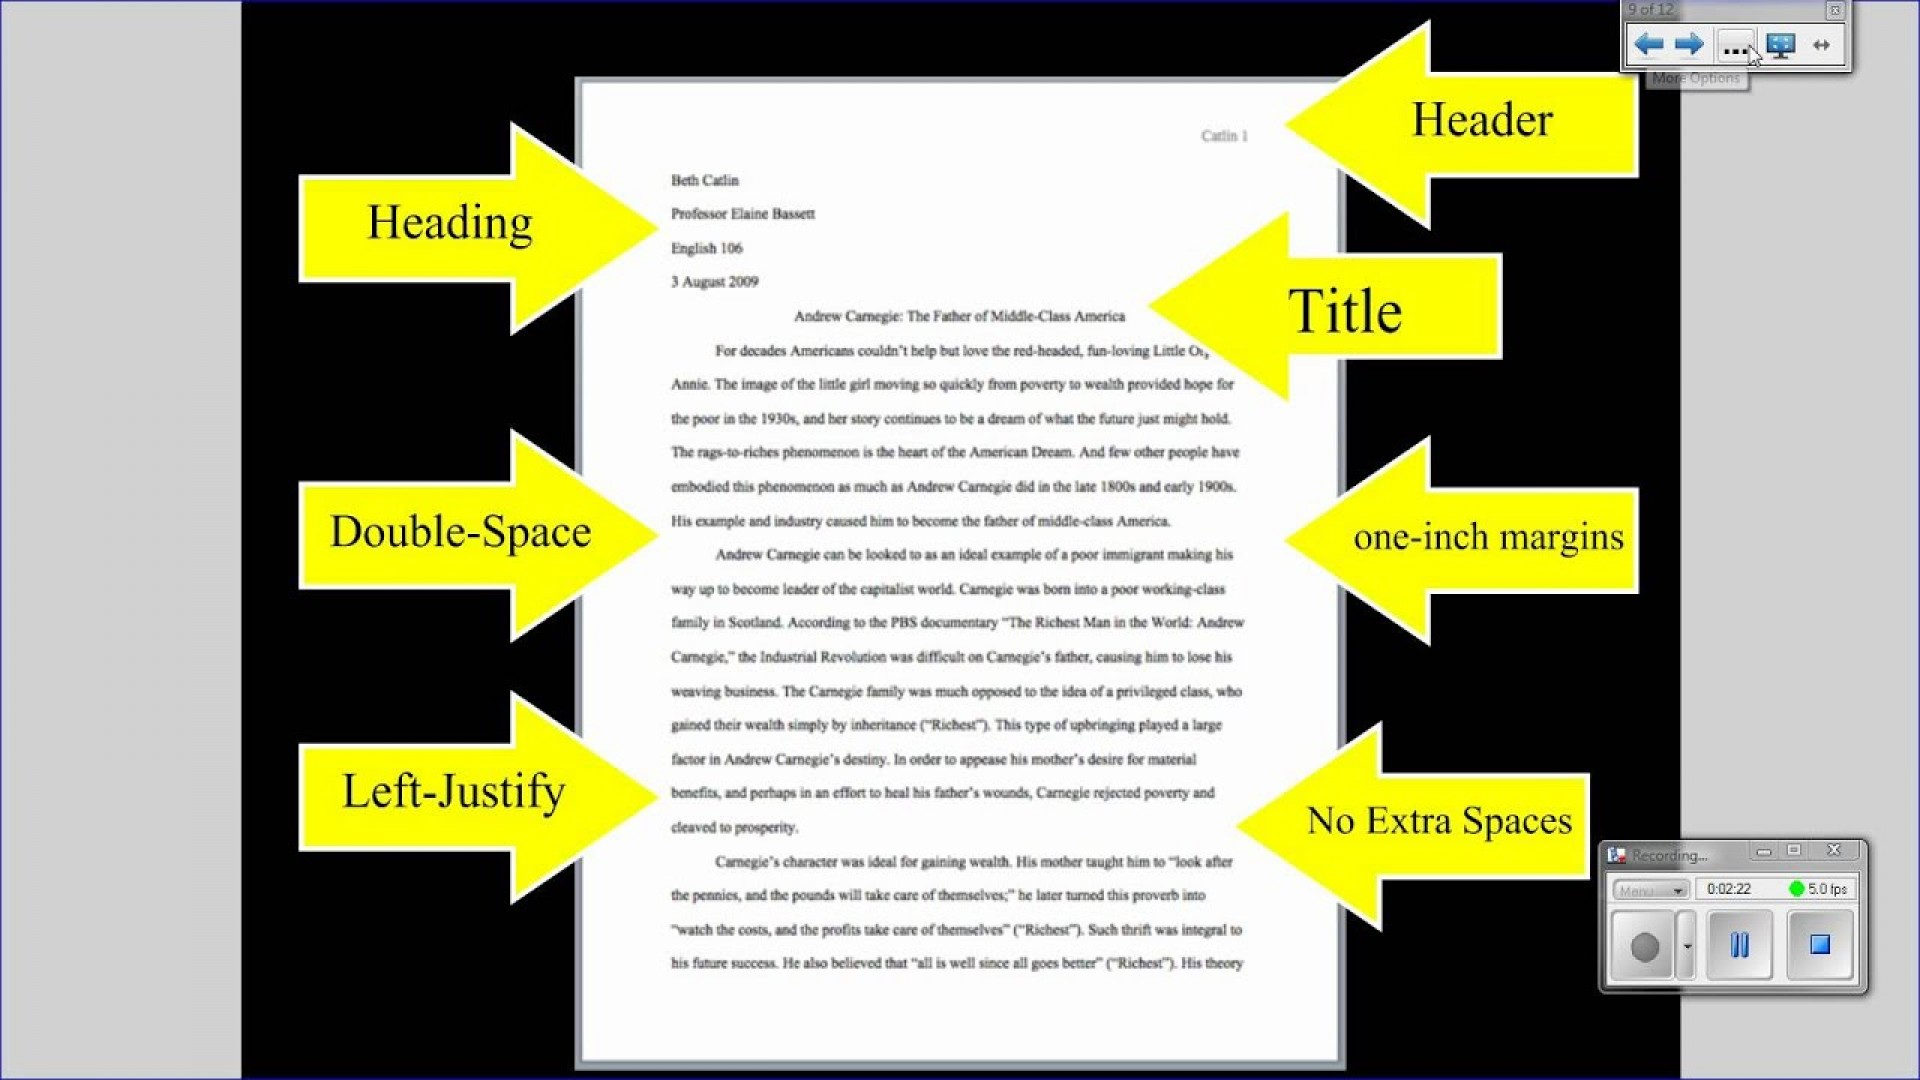 017 Research Paper Maxresdefault Format Of Astounding A Example Mla Works Cited Sample Outline In Apa Style 1920